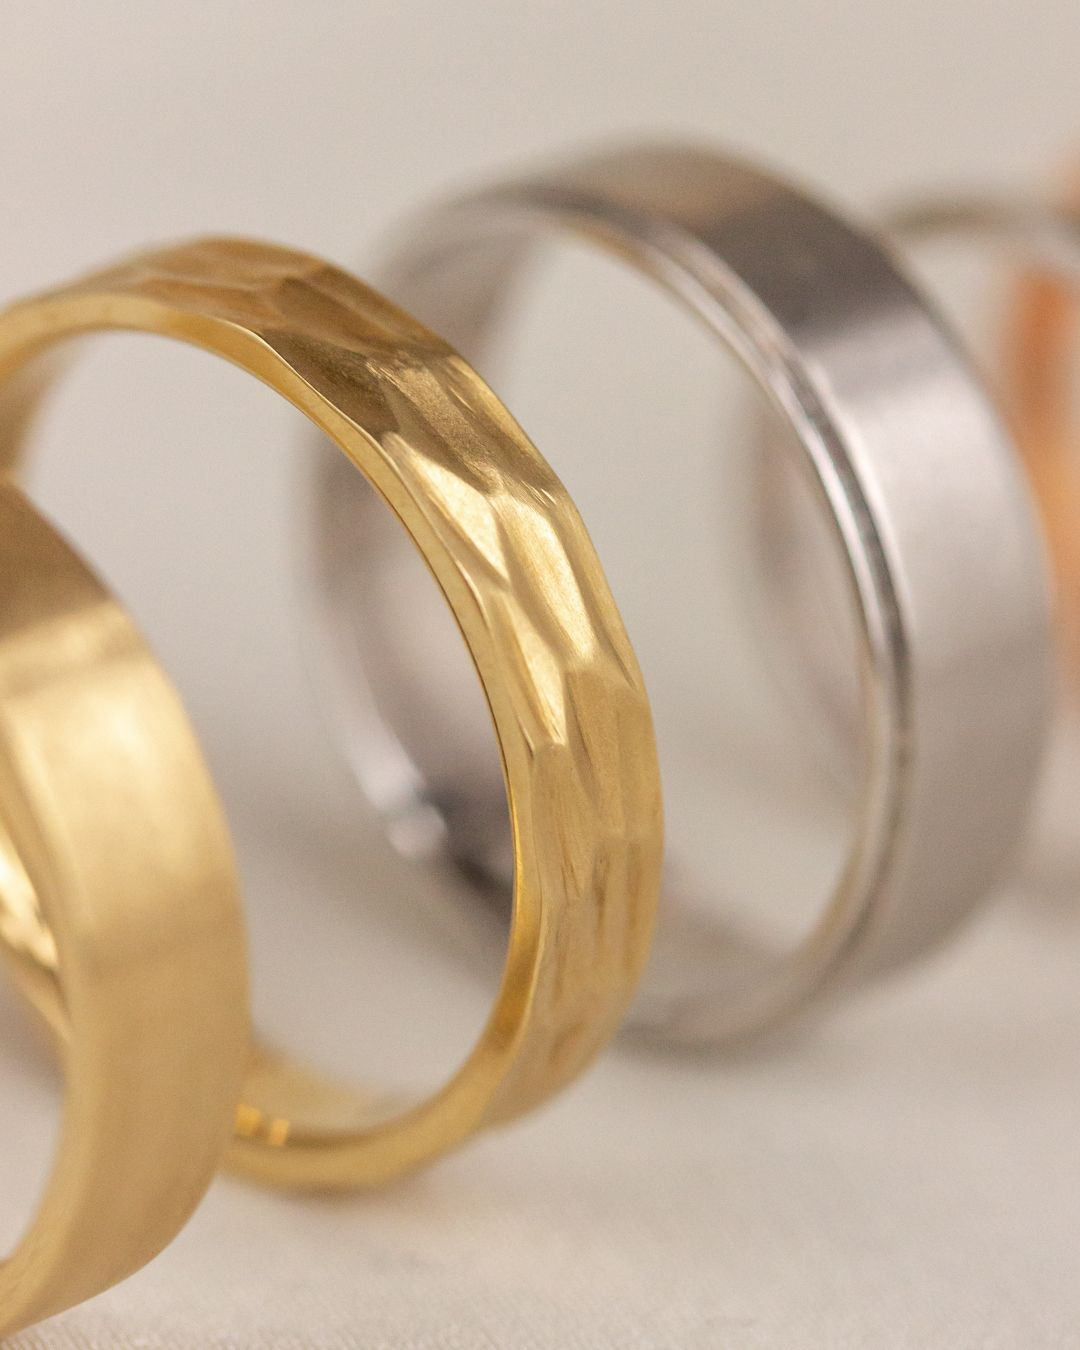 Wedding Band Finishes In 2020 Unique Wedding Bands Antique Rings Wedding Bands